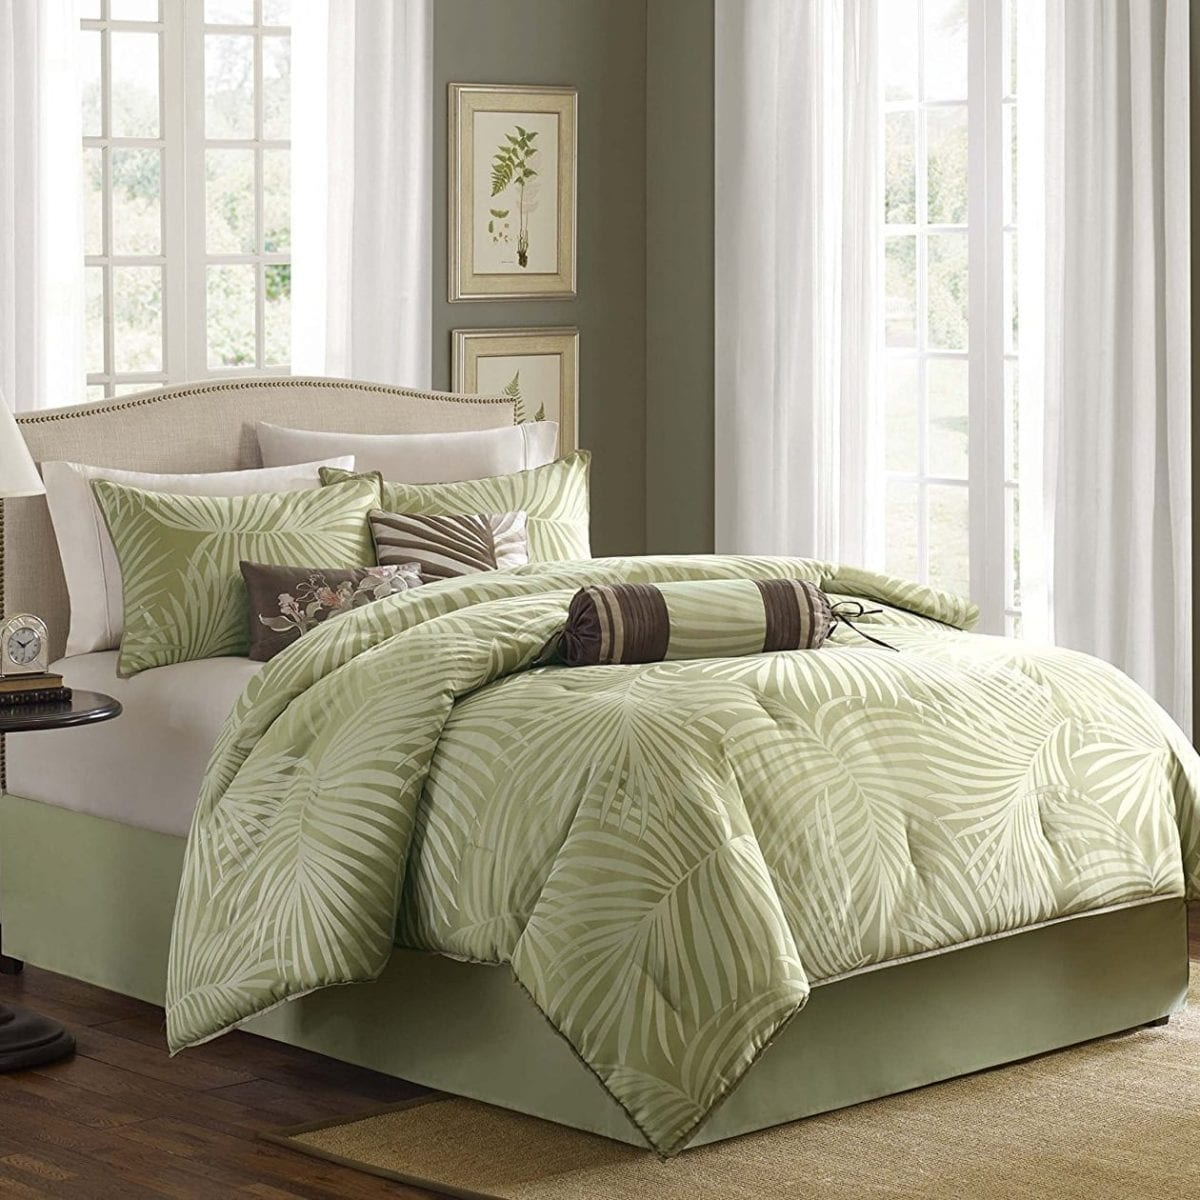 madison-park-freeport-comforter-set 100+ Tropical Bedding Sets and Tropical Comforters For 2020